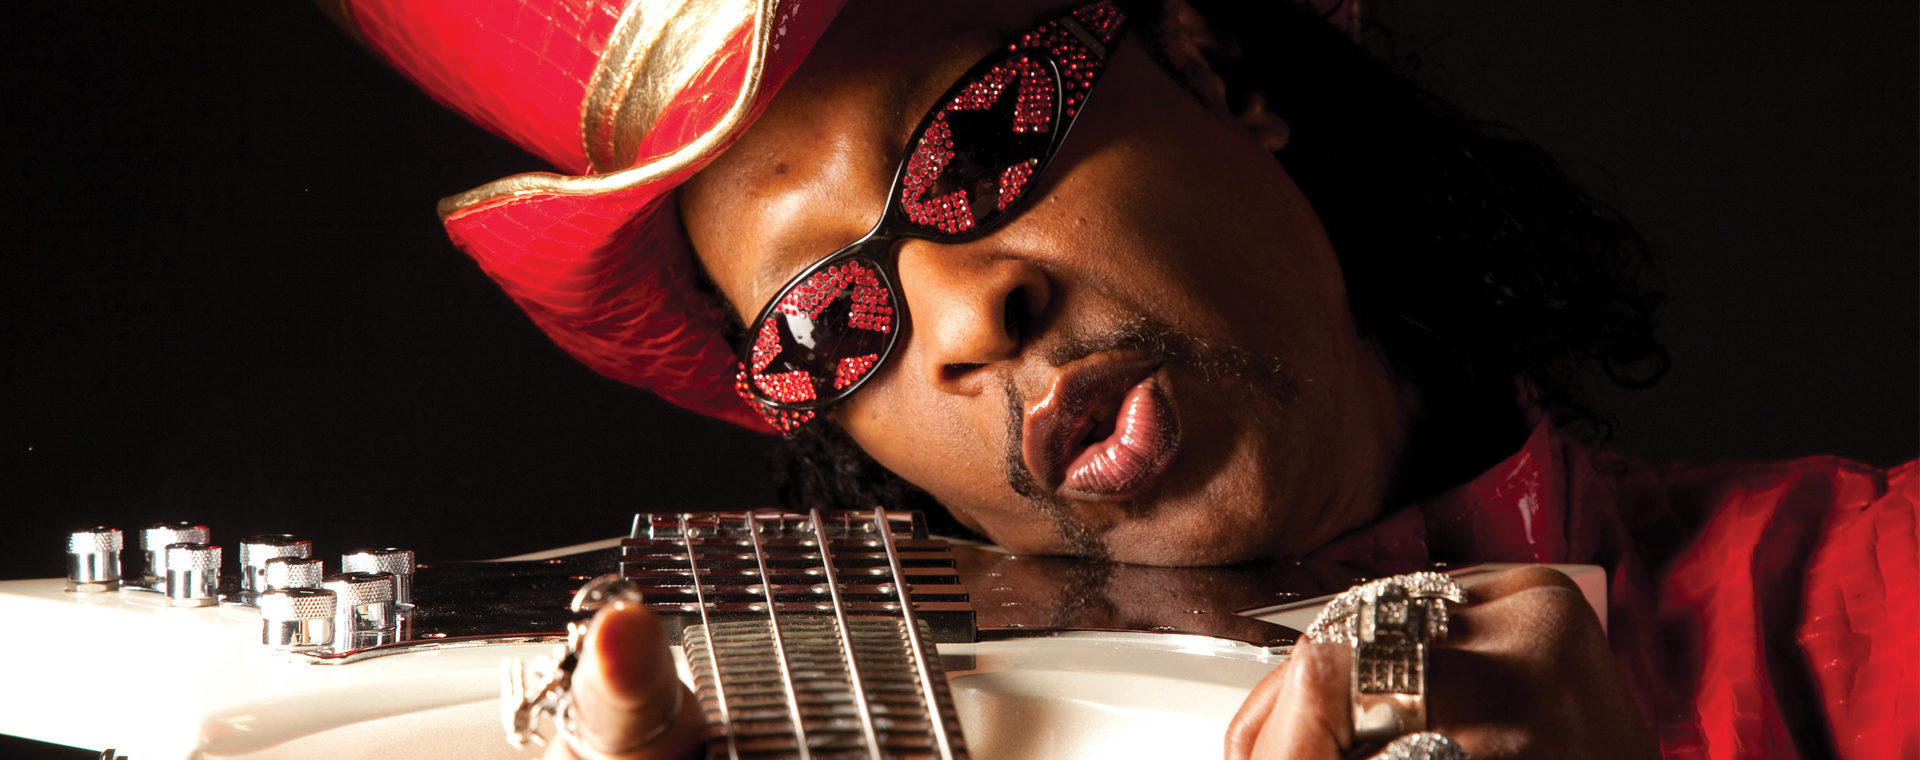 LATEST ISSUE <br><b>Bootsy</b></br>